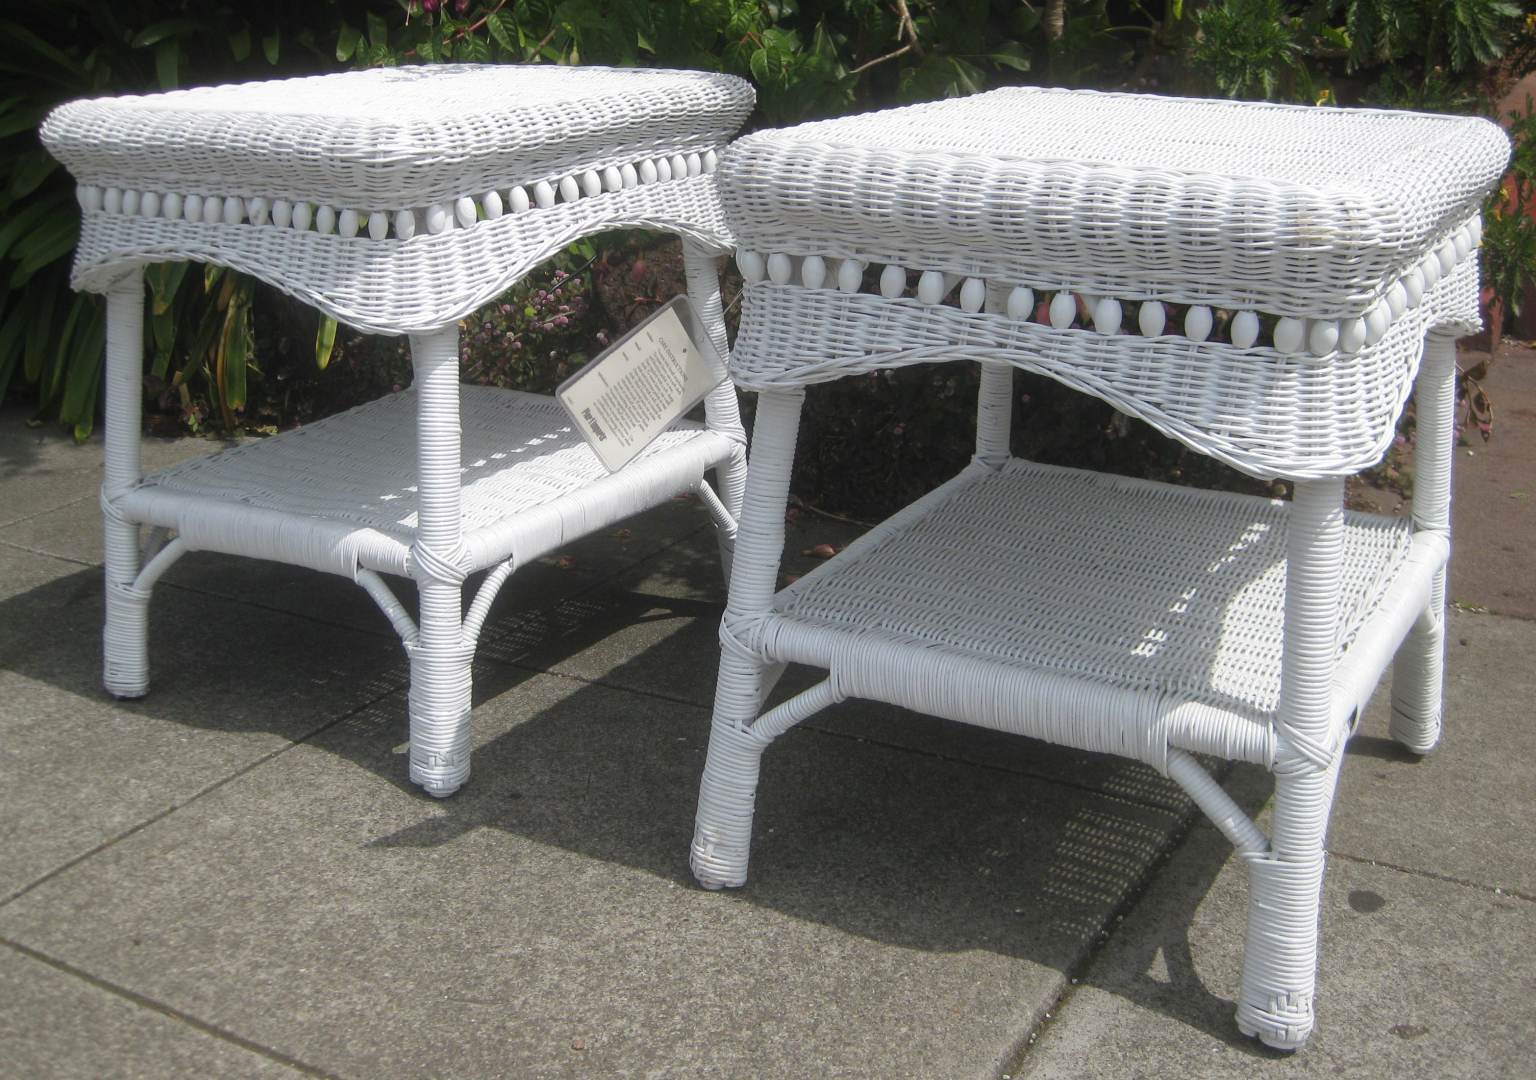 Pier One Wicker Chairs Uhuru Furniture And Collectibles Sold Pier 1 Wicker Side